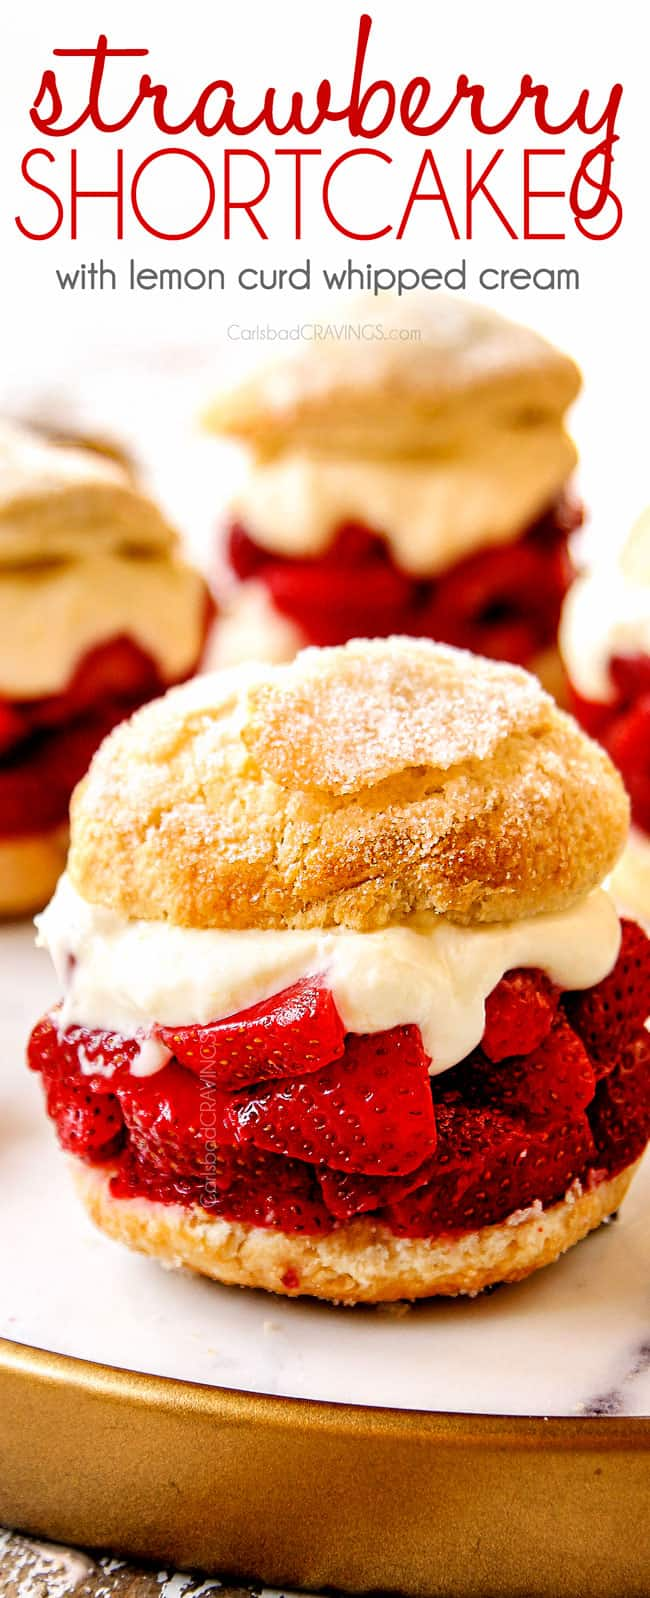 showing how layer strawberry shortcake recipe by layering biscuits with strawberries, whipped cream and a golden biscuit